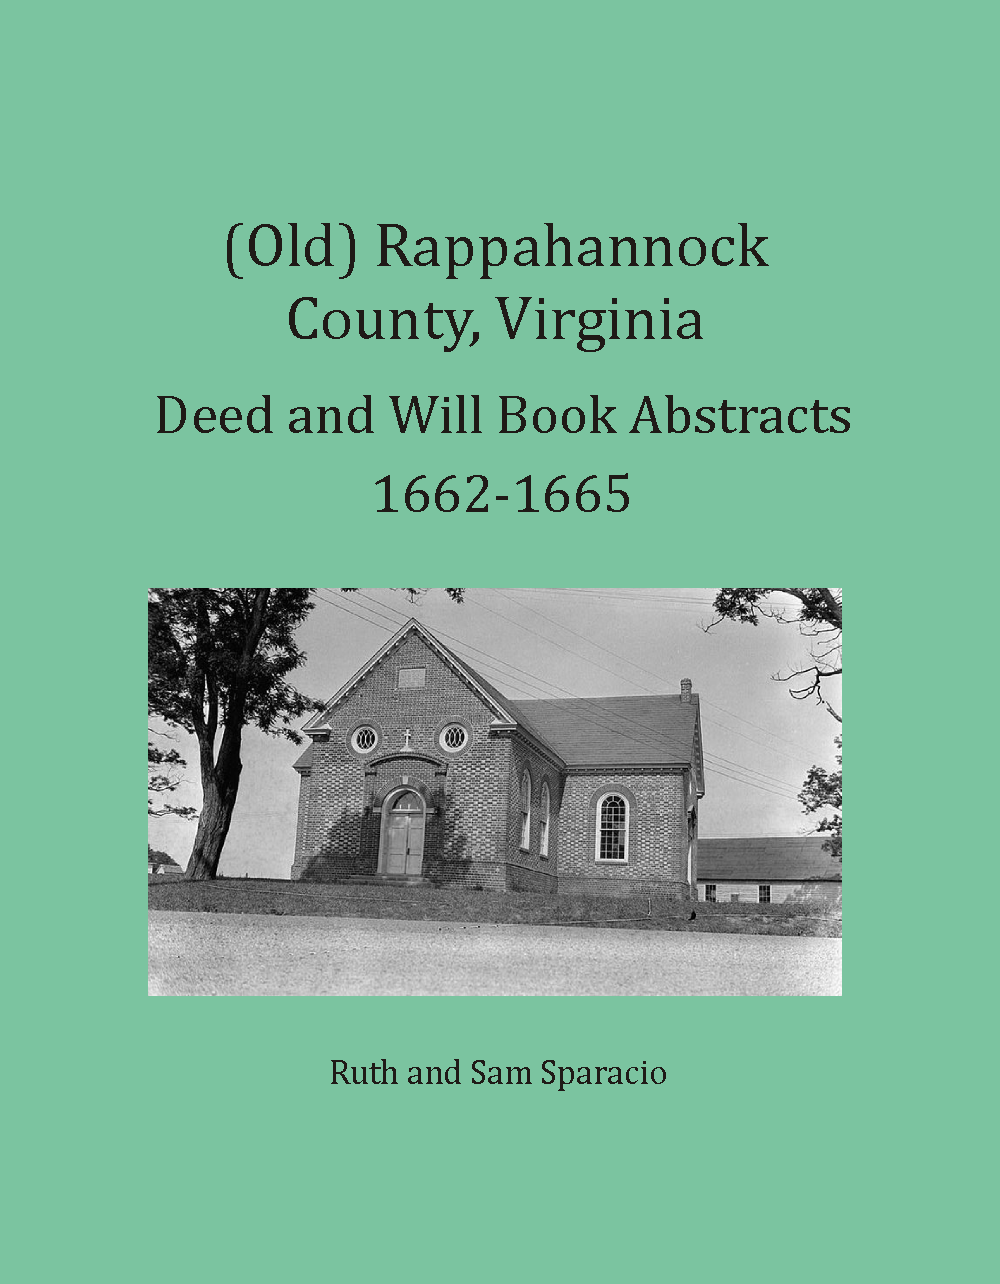 (Old) Rappahannock County, Virginia Deed and Will Book Abstracts, 1662-1665